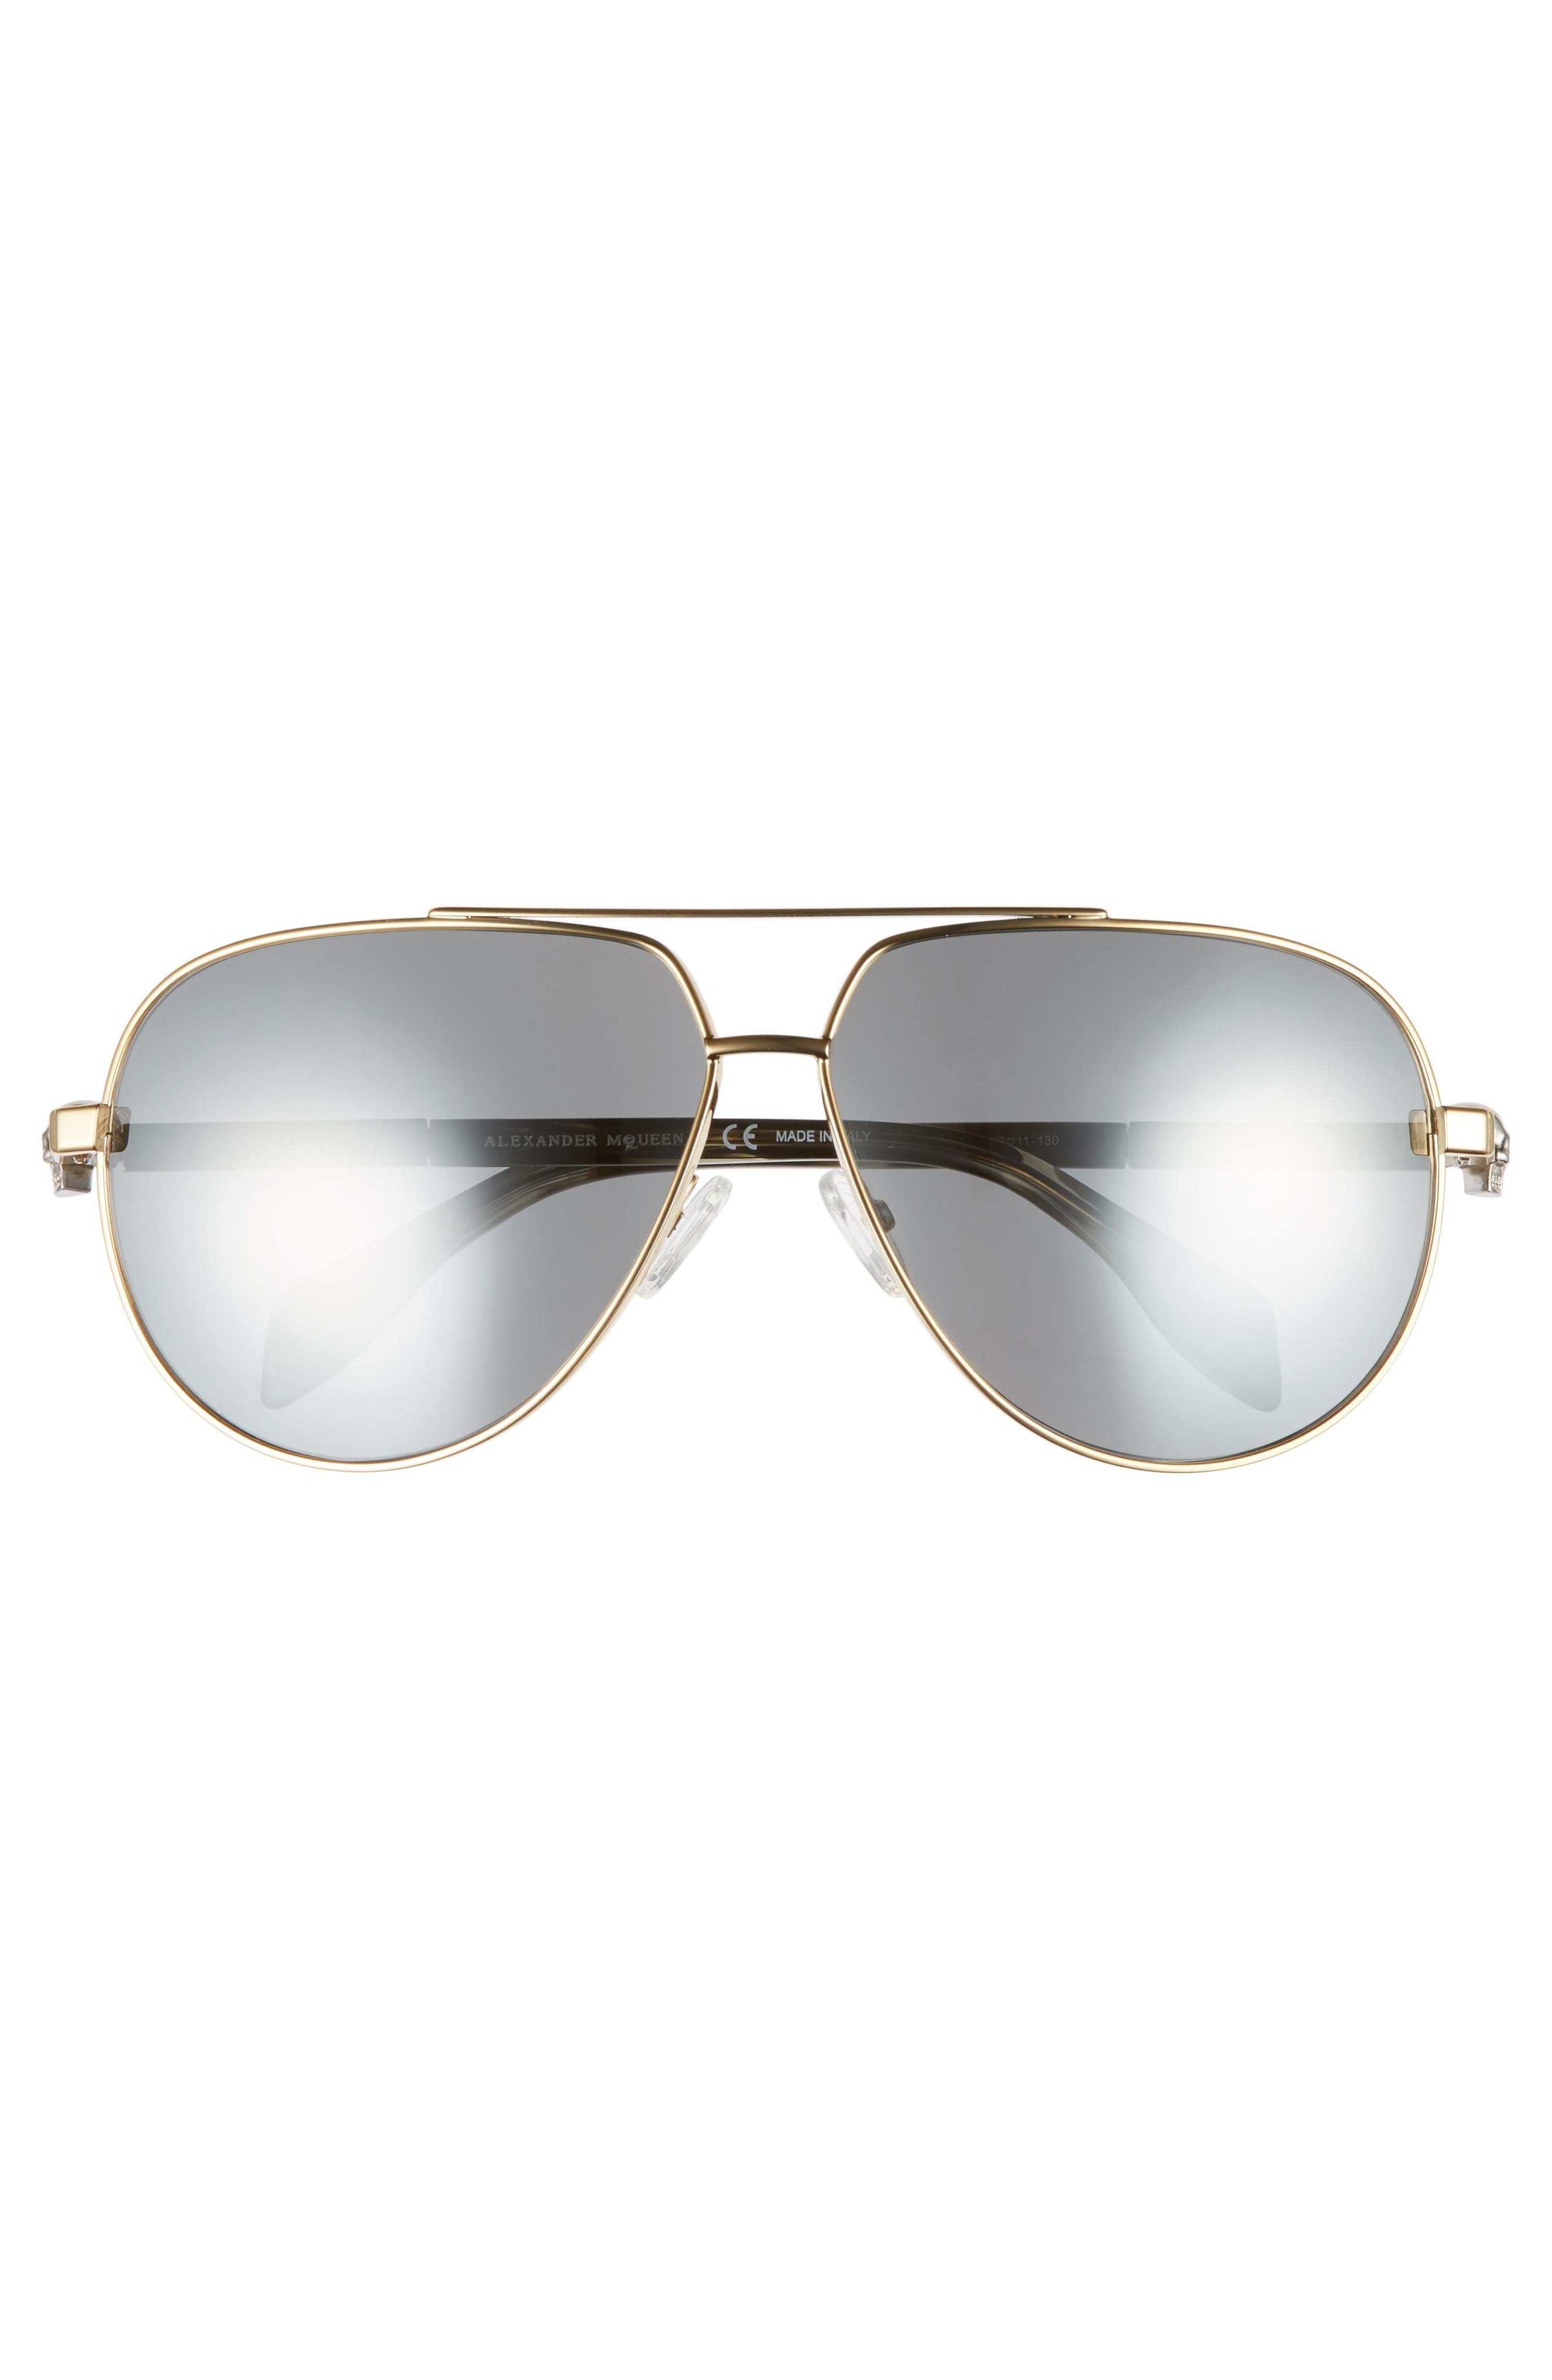 63mm Aviator Sunglasses,                             Alternate thumbnail 3, color,                             Gold